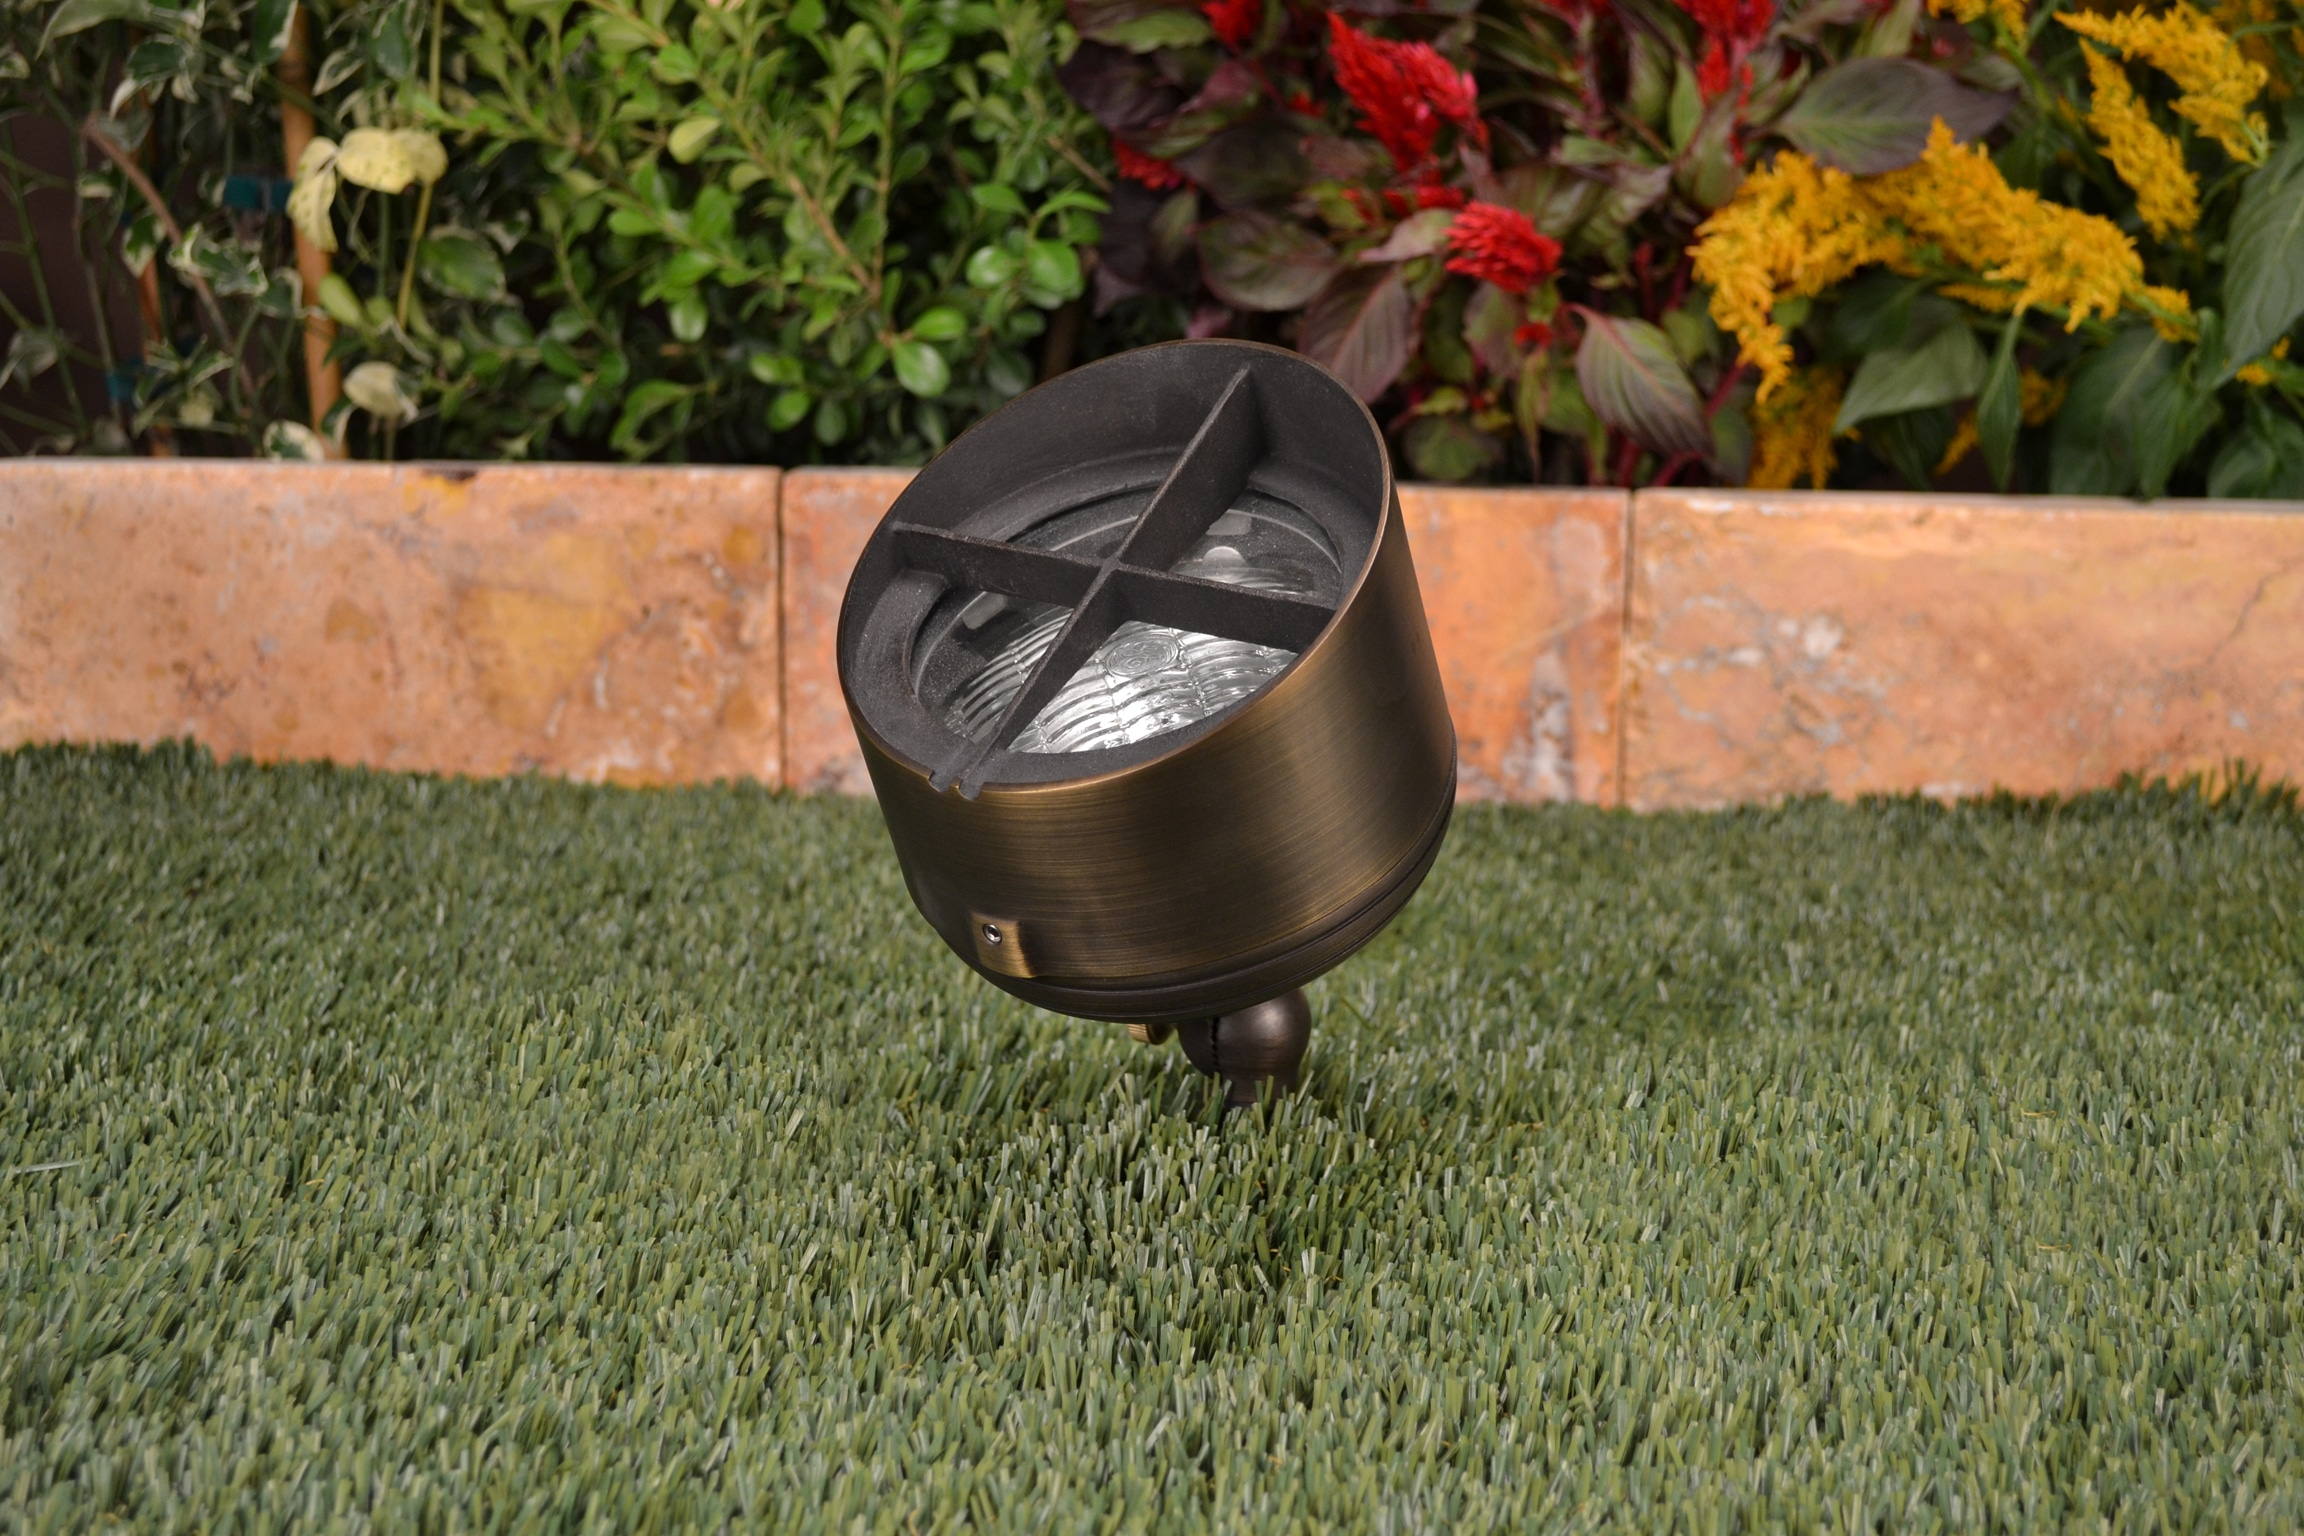 12 Volt Outdoor Lighting Systems Unique Lighting Systems